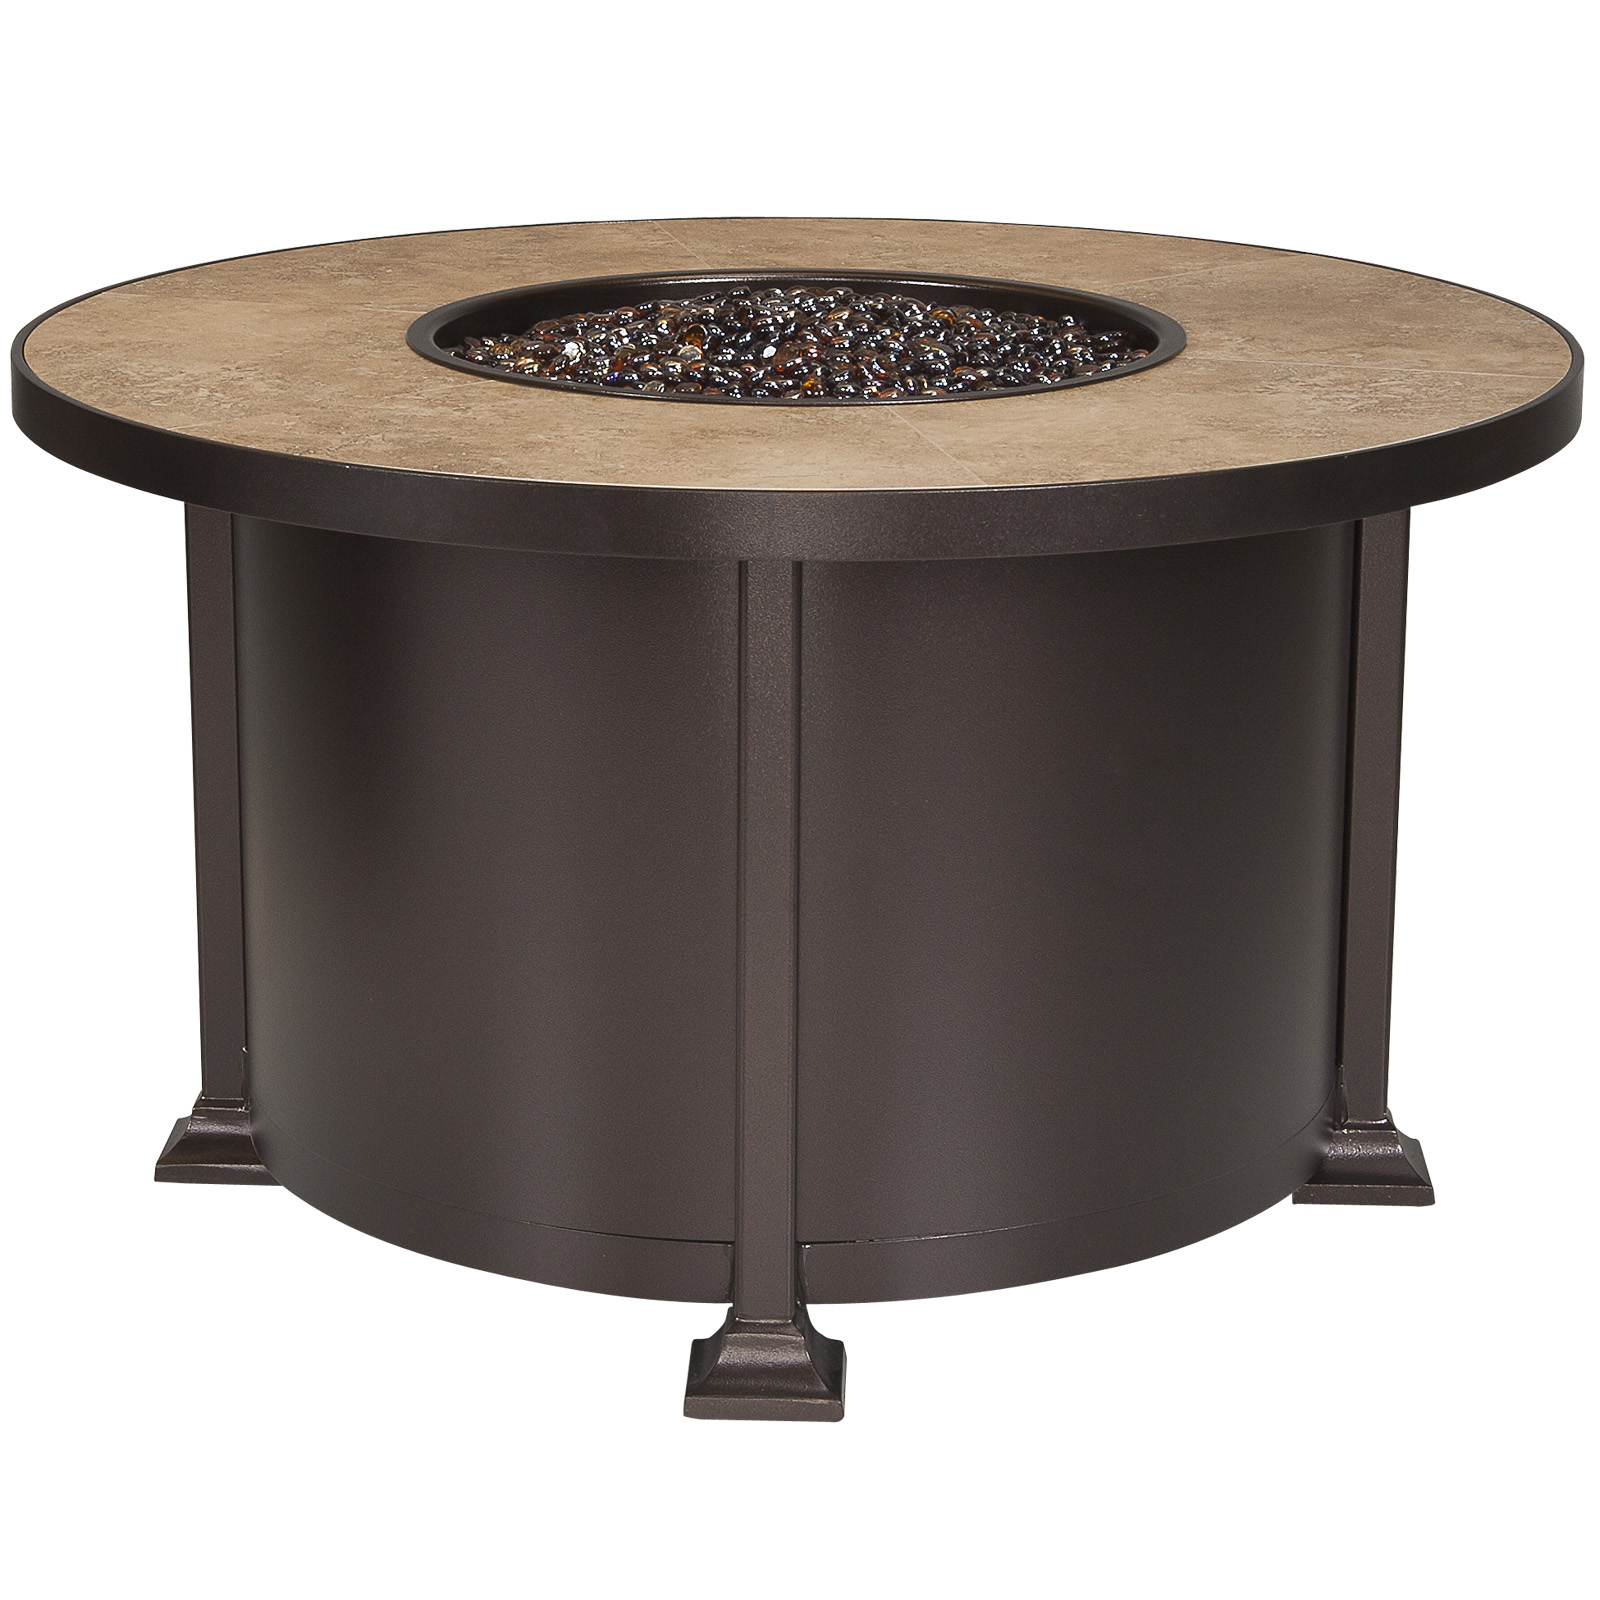 OW Lee Vulsini 36 x 58 Rectangle Chat Height Fire Pit